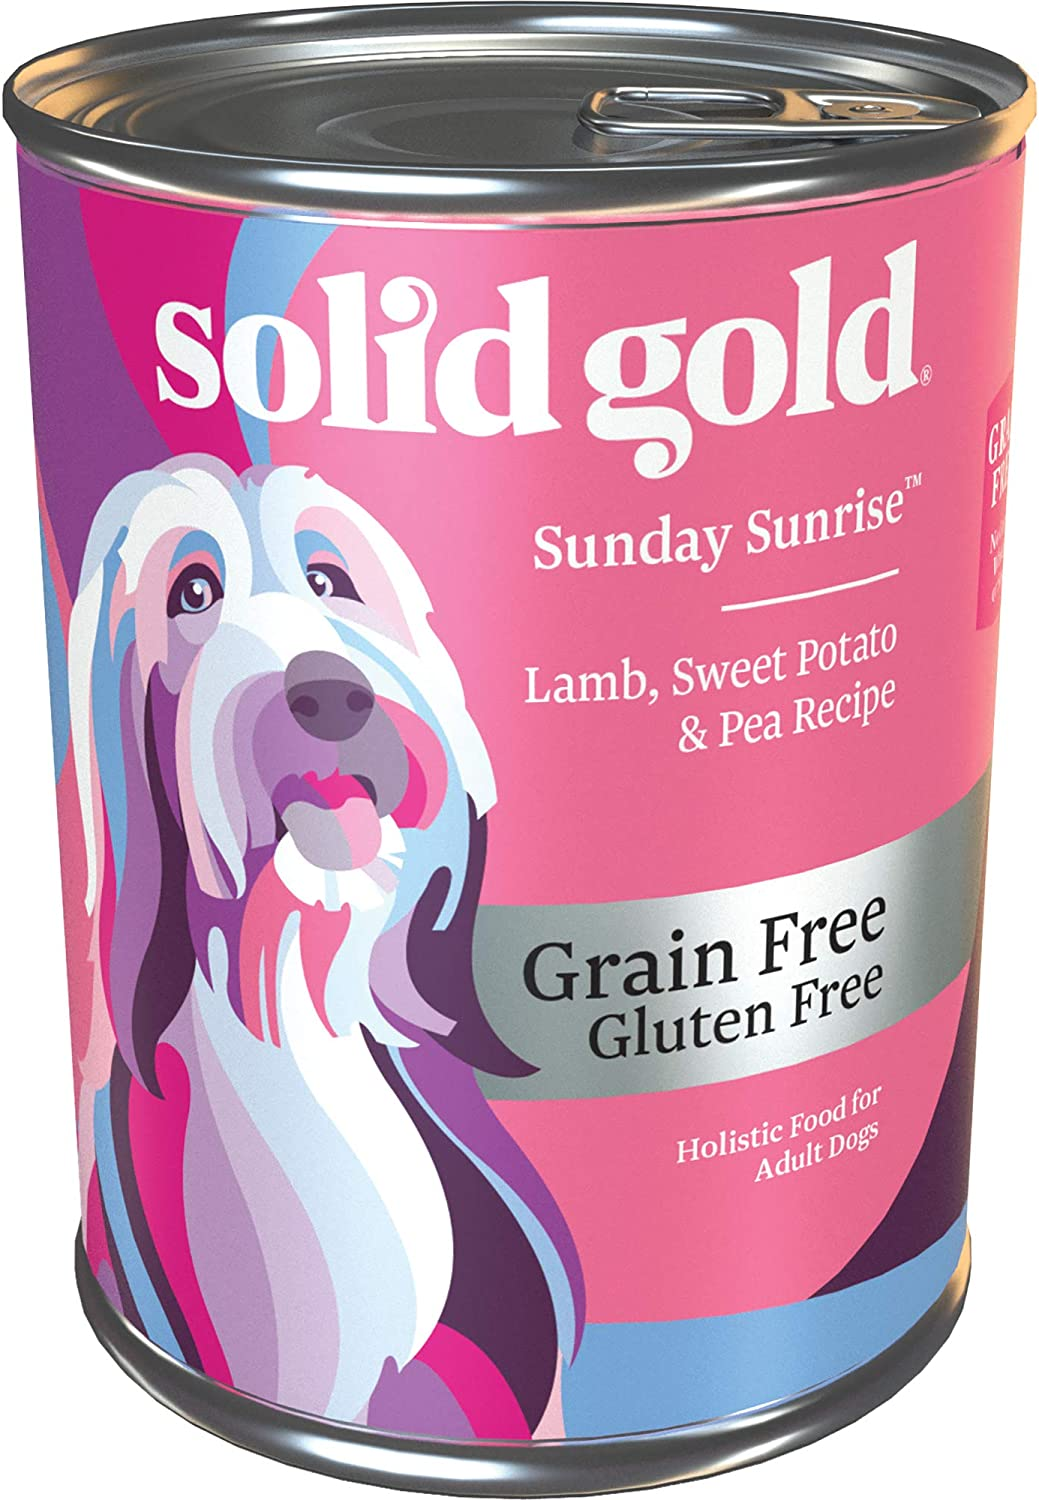 Solid Gold - Sunday Sunrise with Lamb - Grain Free Wet Dog Food